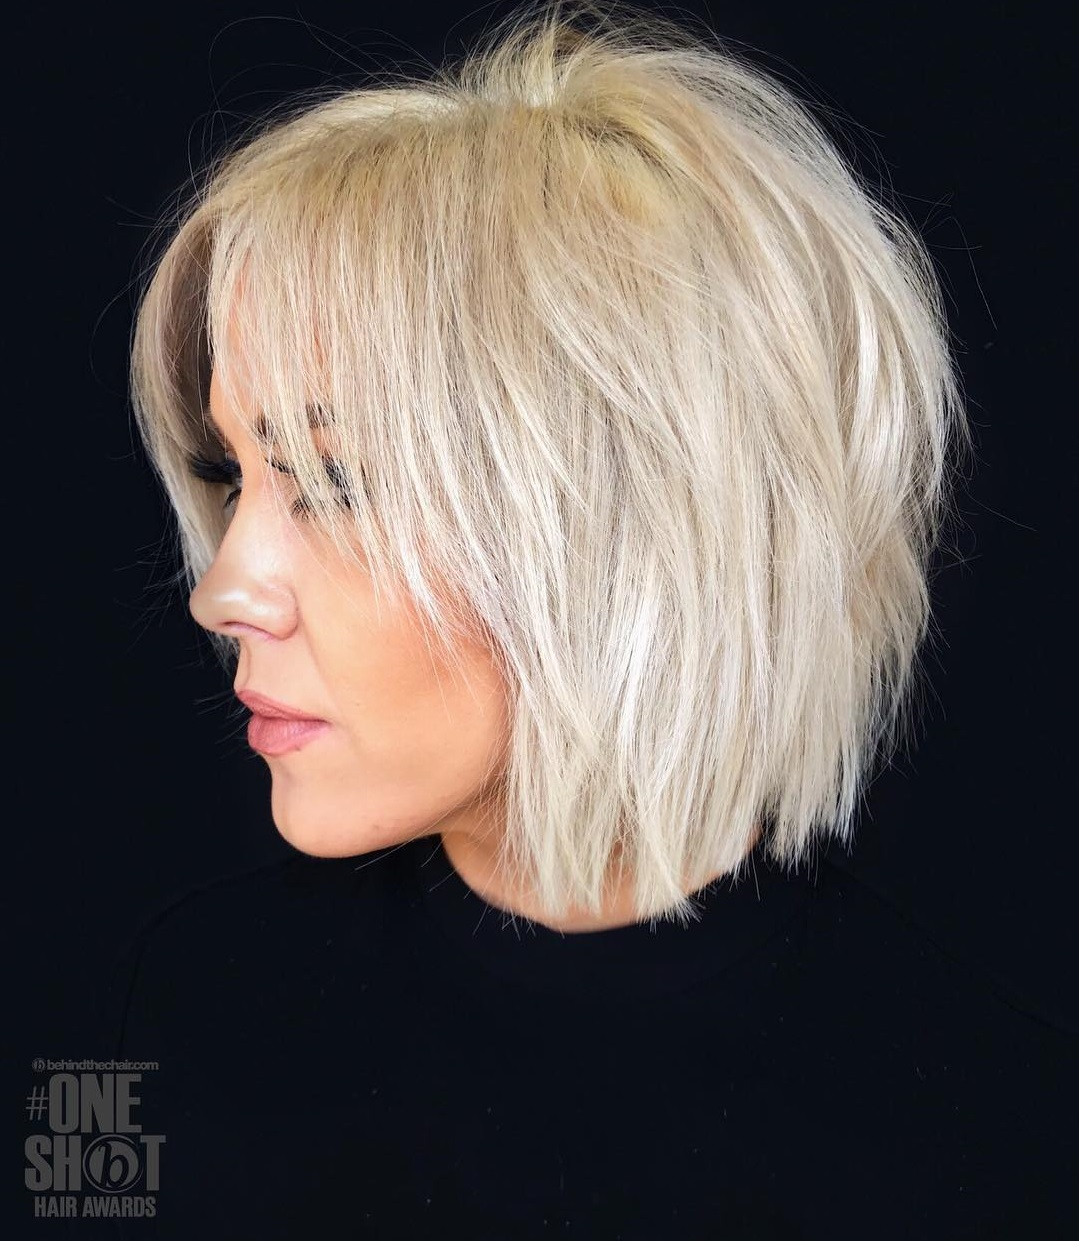 100 Mind,Blowing Short Hairstyles for Fine Hair